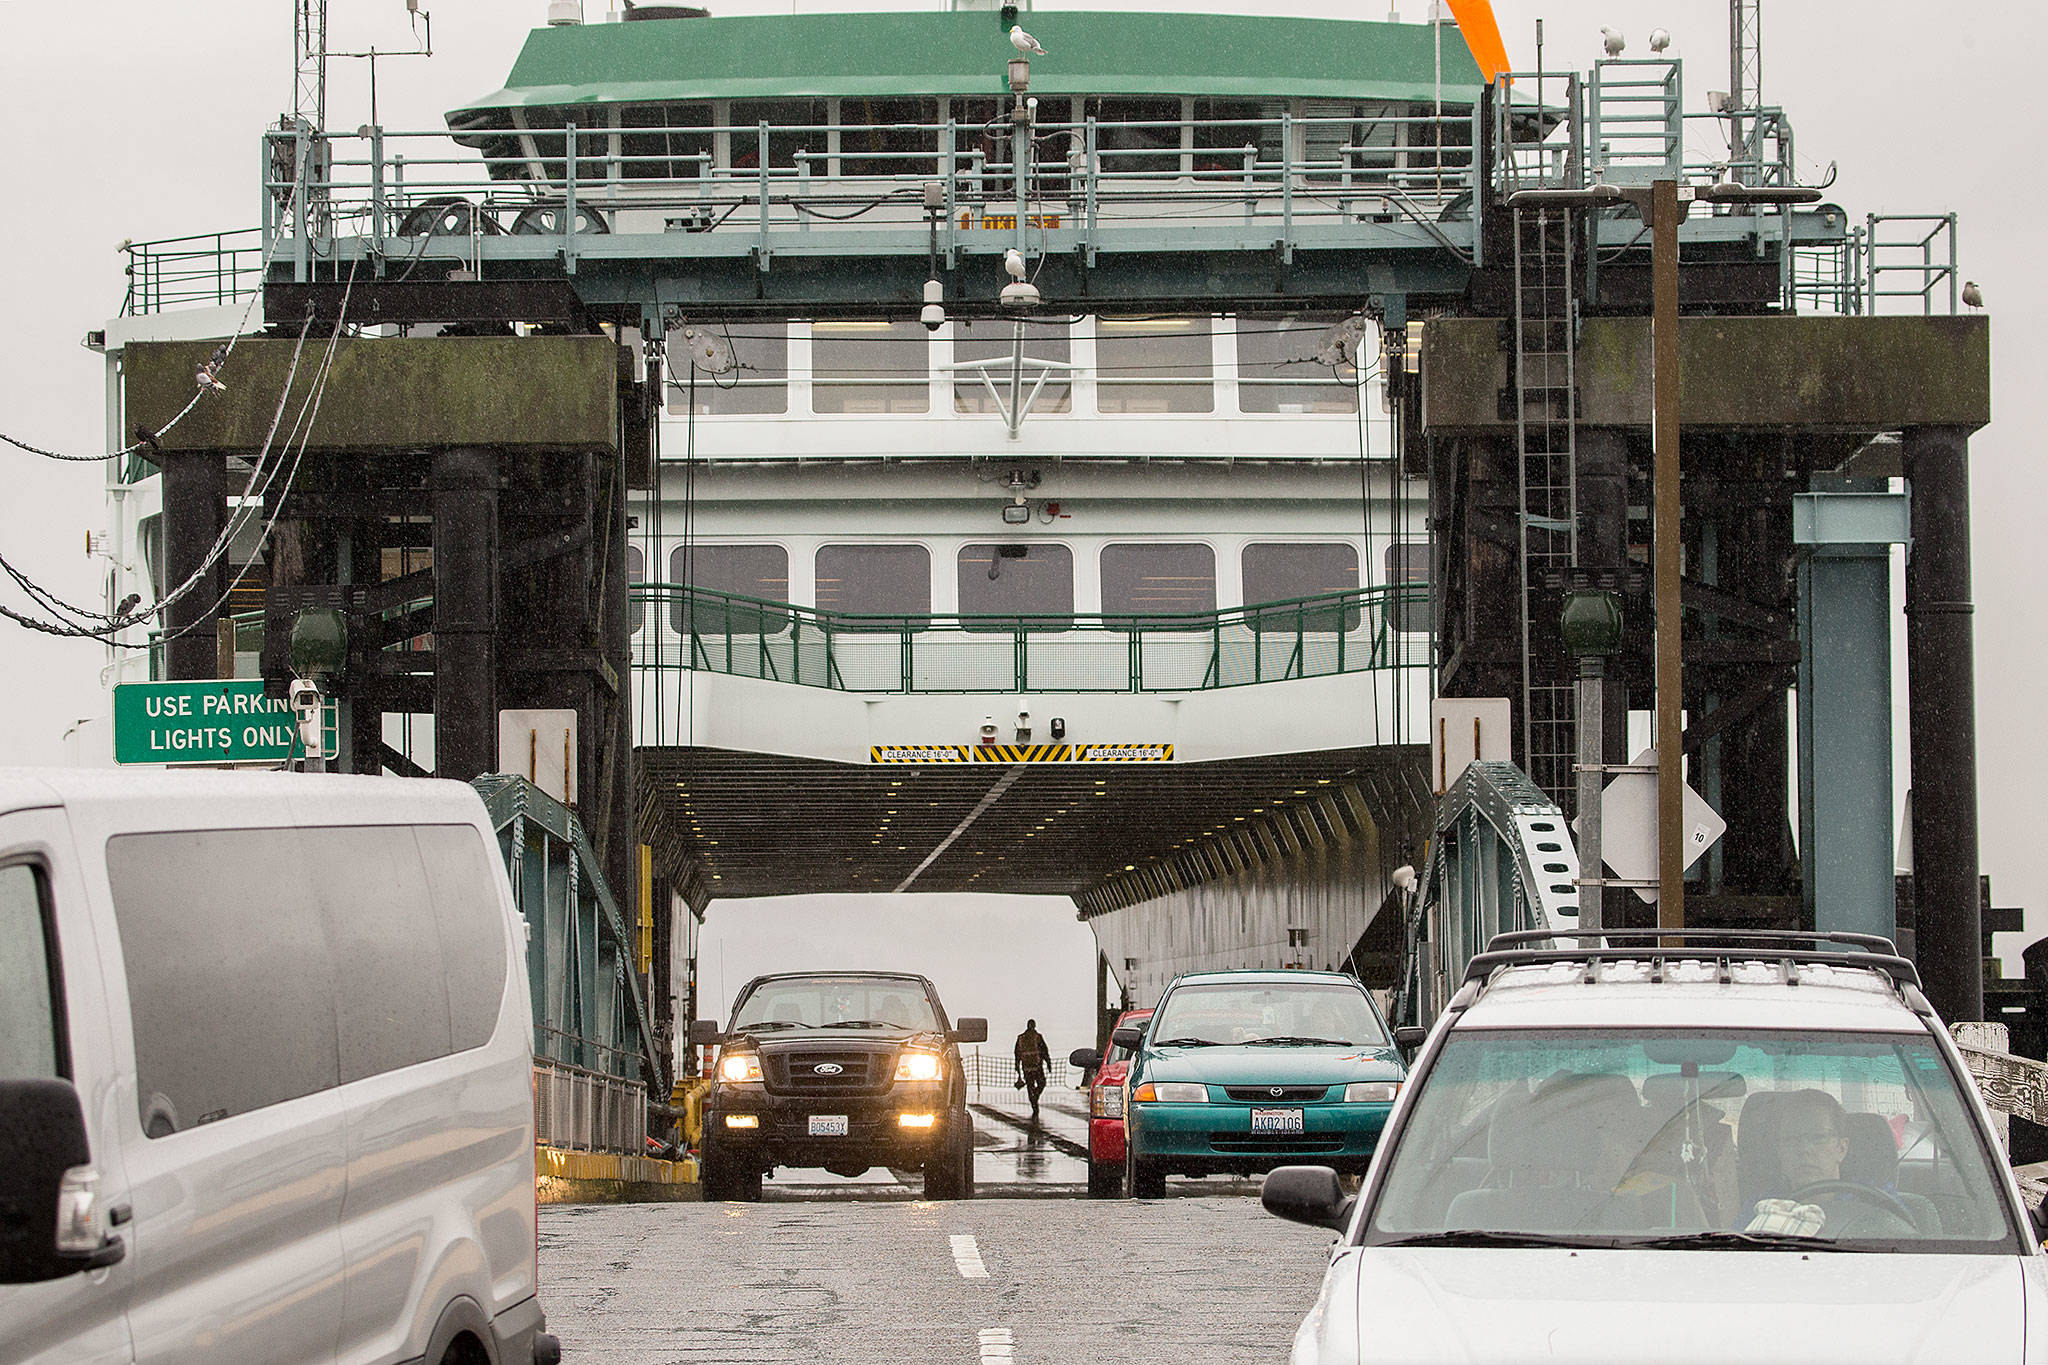 Commuters from Whidbey Island disembark their vehicles from the ferry Tokitae in 2018 in Mukilteo. (Andy Bronson / Herald file)